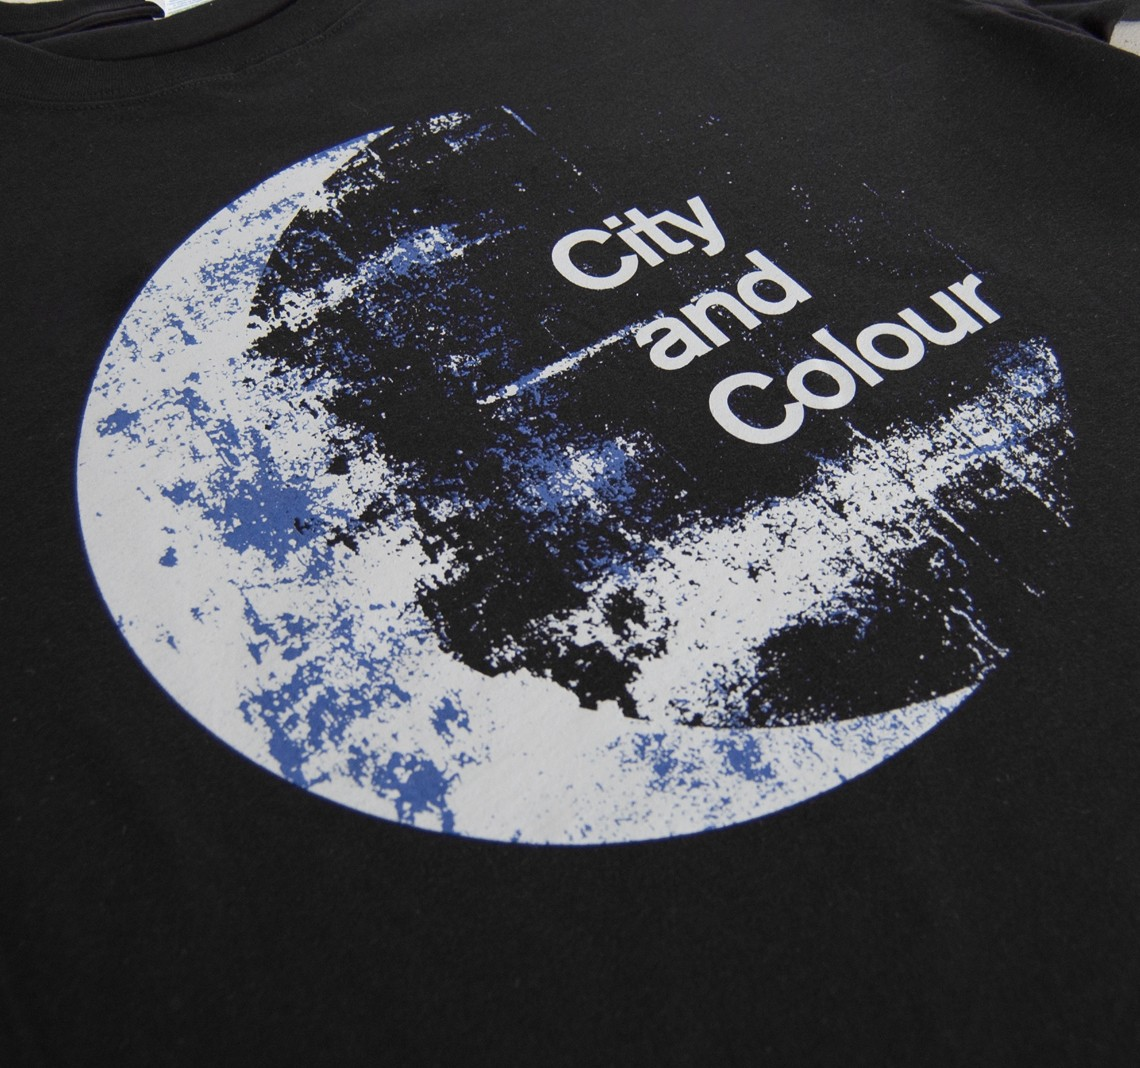 men 39 s moon t shirt black apparel city and colour online store. Black Bedroom Furniture Sets. Home Design Ideas